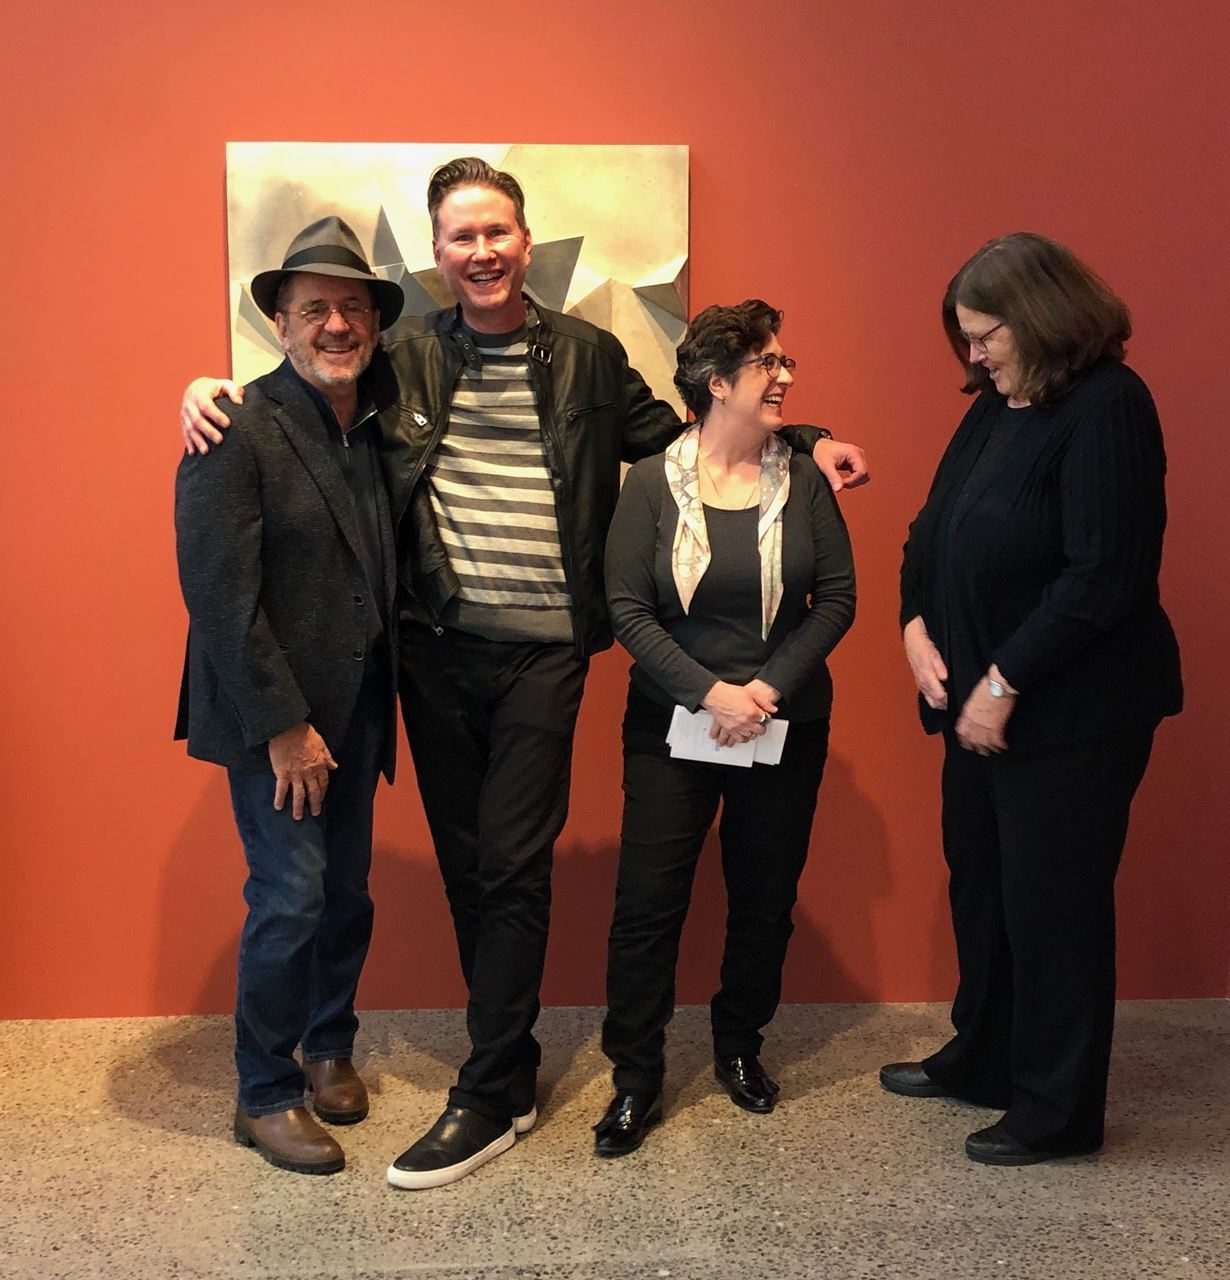 Wayne Higby,Director and Chief Curator, Alfred Ceramic Art Museum; Brian Whisenhunt, Executive Director Rockwell Museum of American Art and MANY Board Member; Erika Sanger, and Susan Kowalczyk, Curator of Collections and Director of Research, Alfred Ceramic Museum